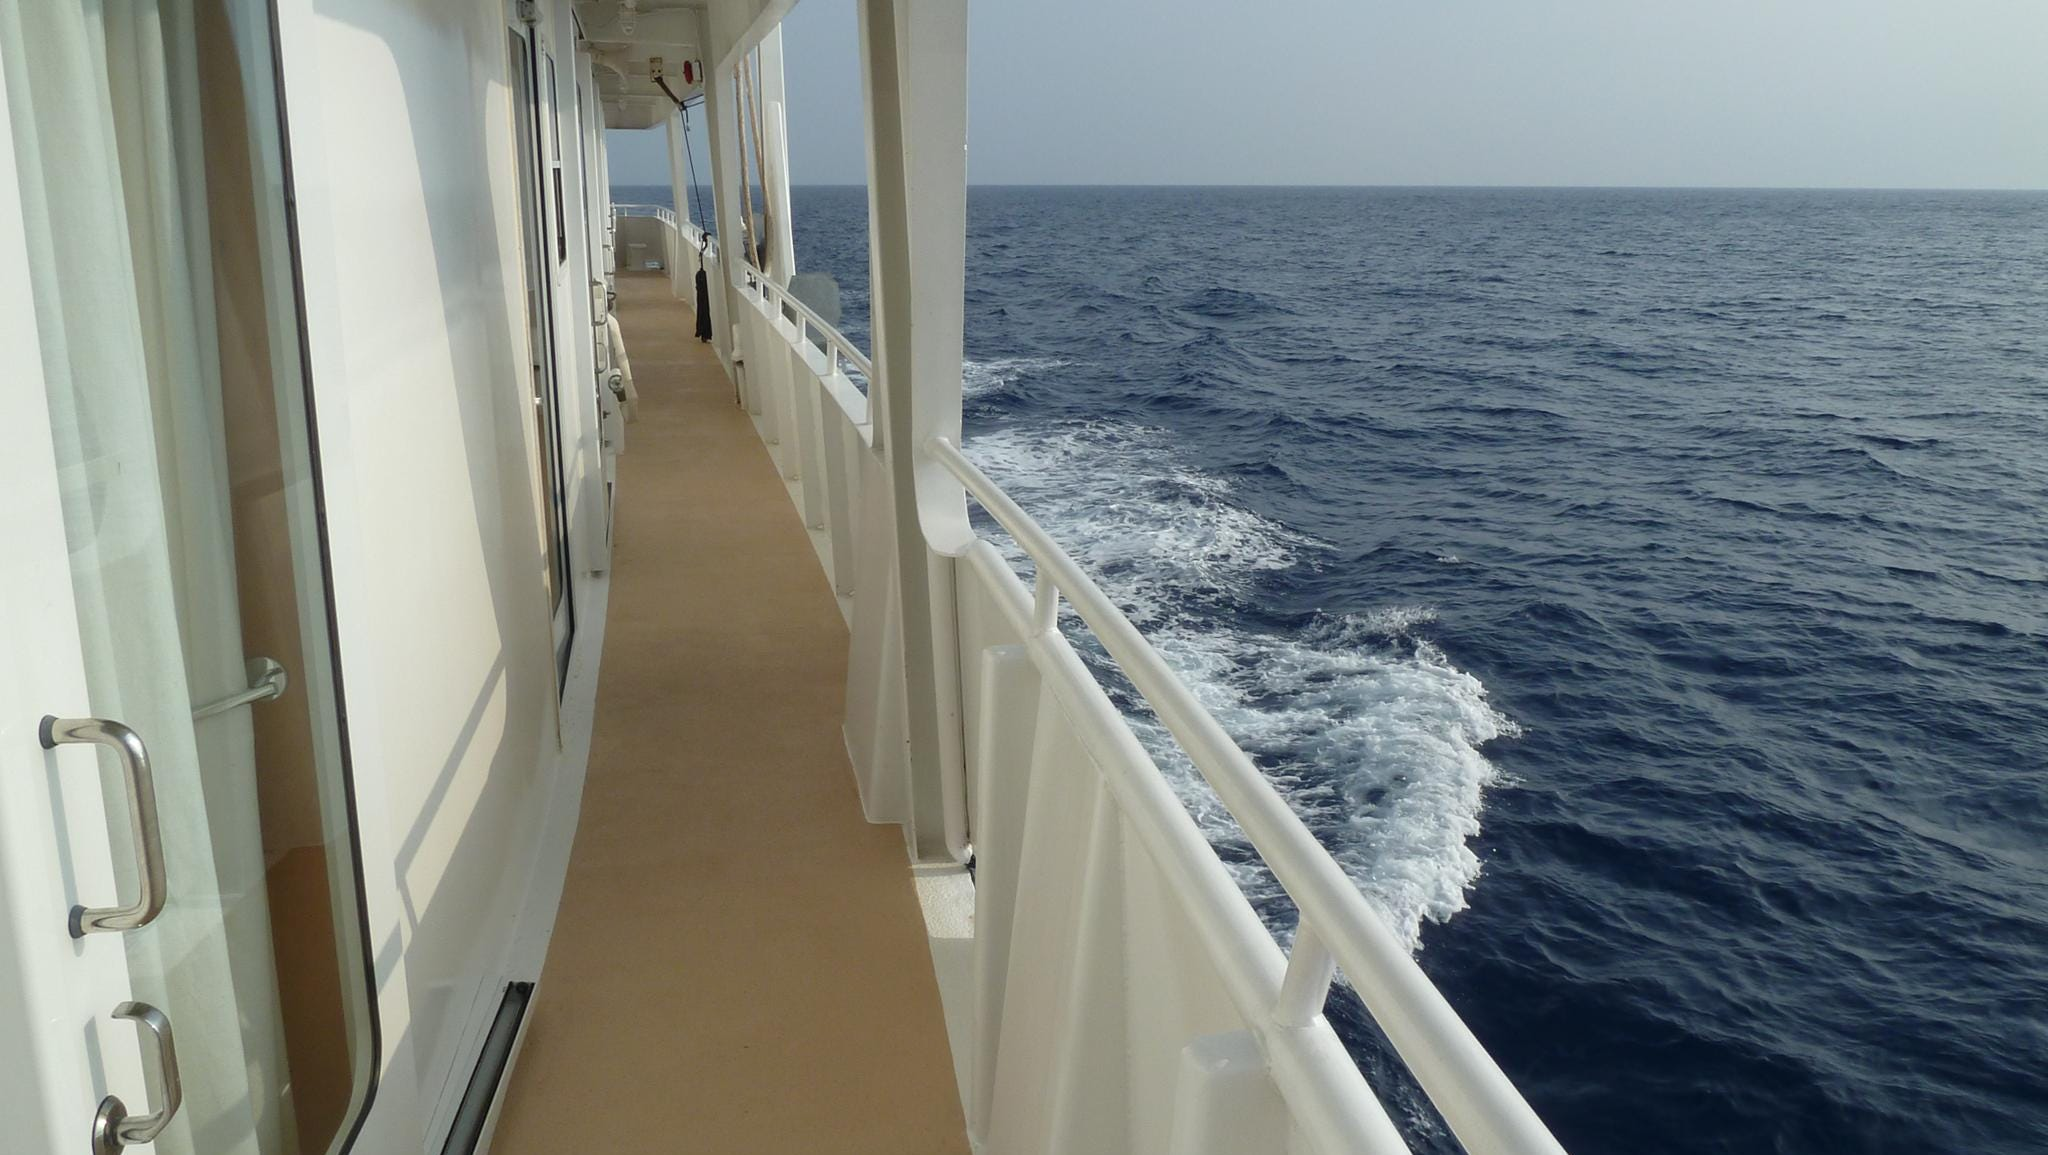 Cabin Deck accommodation is accessed via doors that open onto narrow promenades on either side.